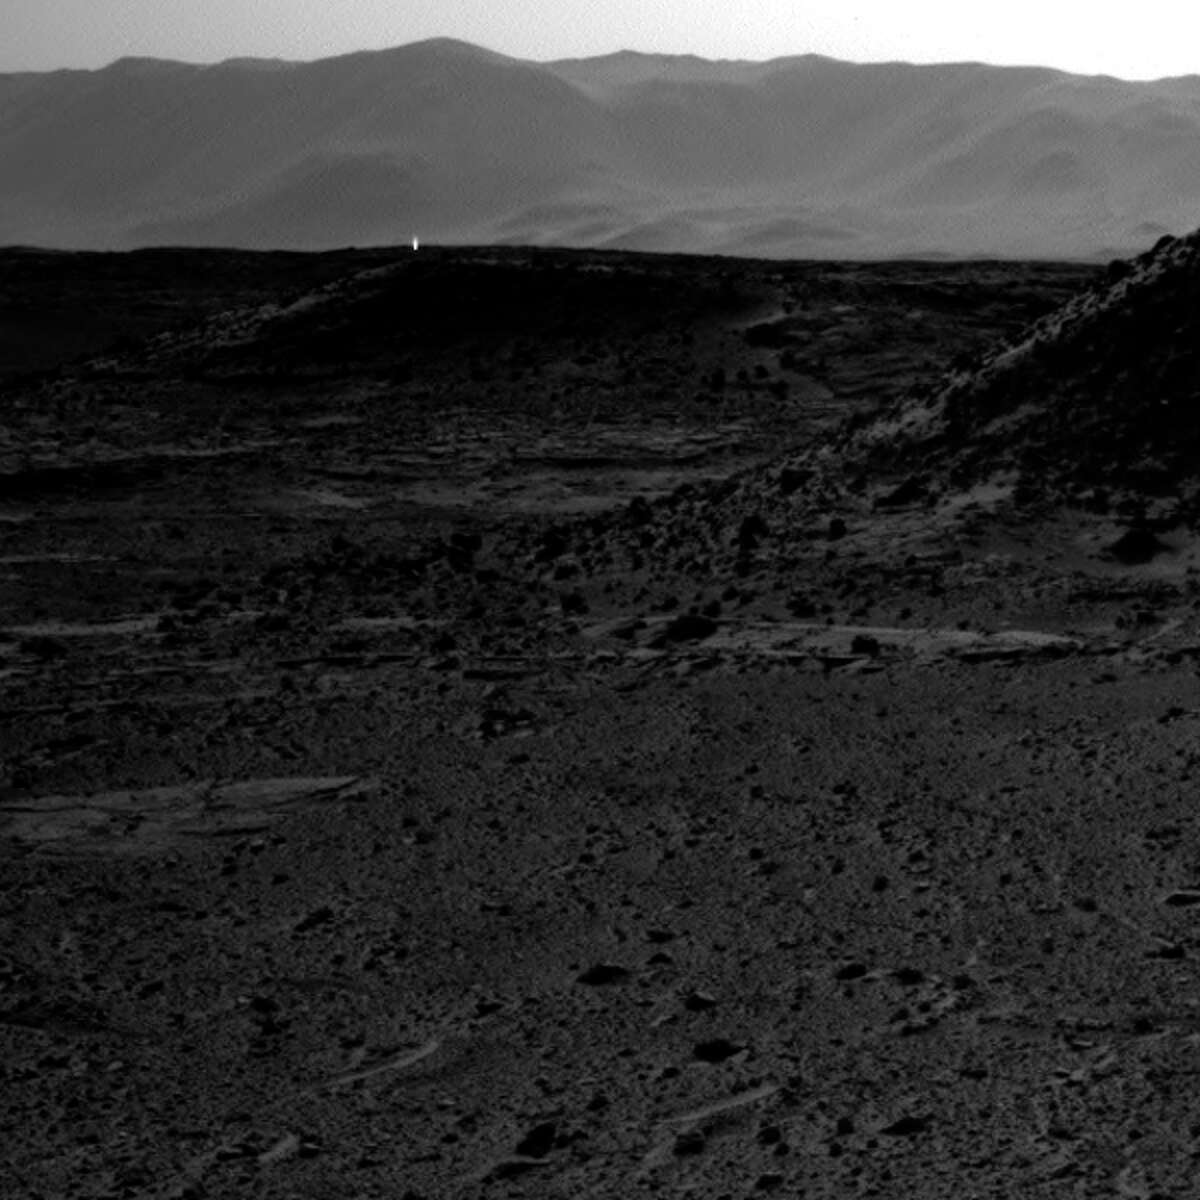 Cropped: This image was taken by Navcam: Right B (NAV_RIGHT_B) onboard NASA's Mars rover Curiosity on Sol 589 (2014-04-03 10:00:03 UTC).